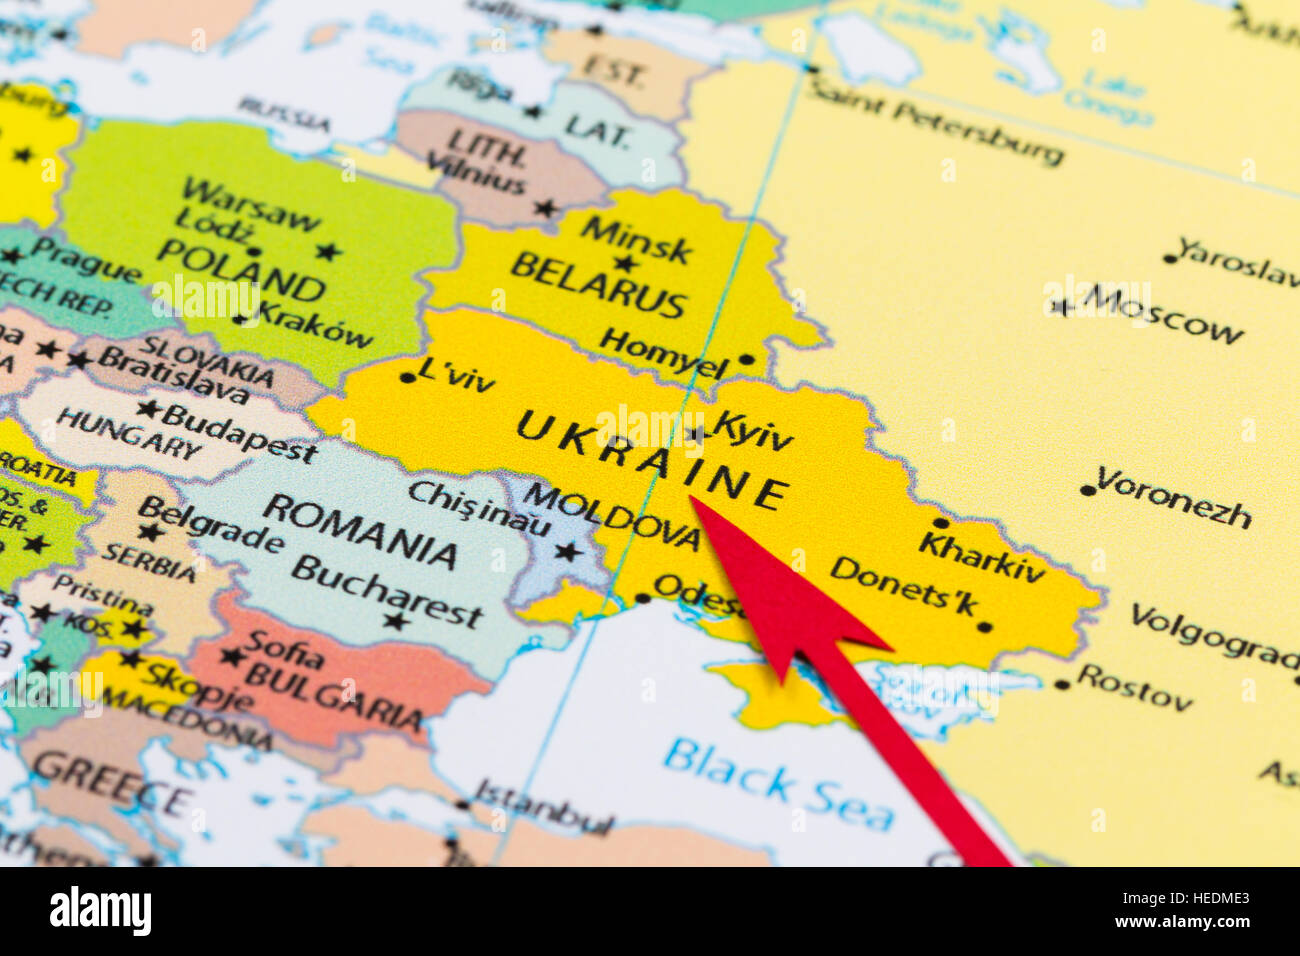 Red arrow pointing Ukraine on the map of Europe continent - Stock Image